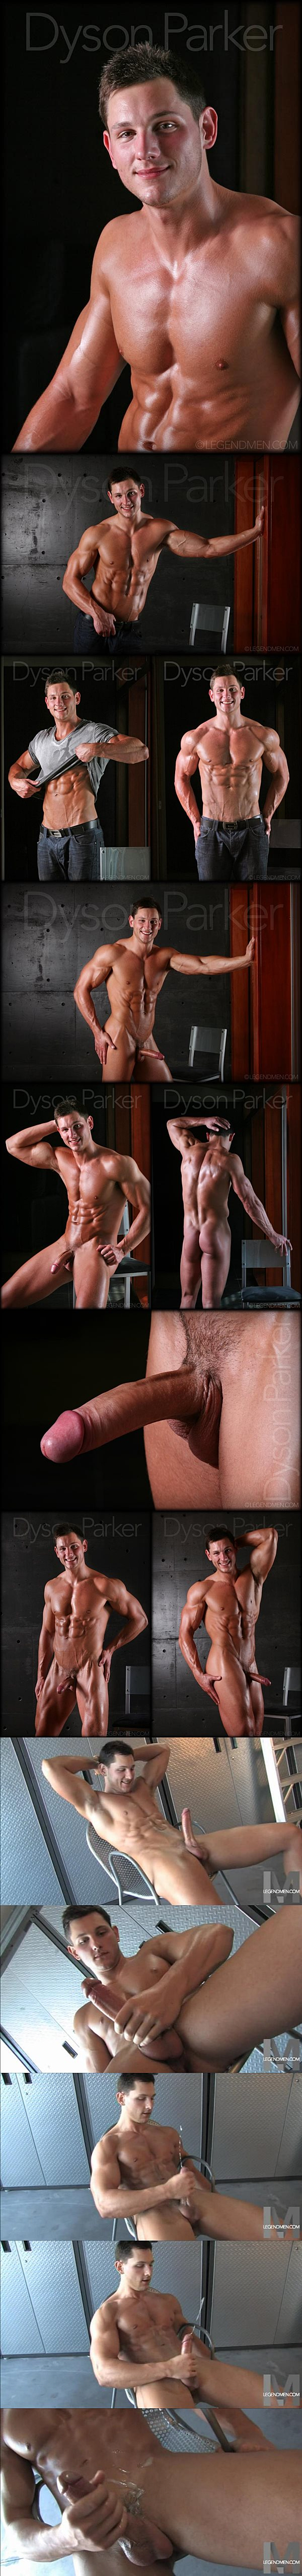 Super handsome straight stud Dyson Parker shoots more than 10 times at Legendmen 02